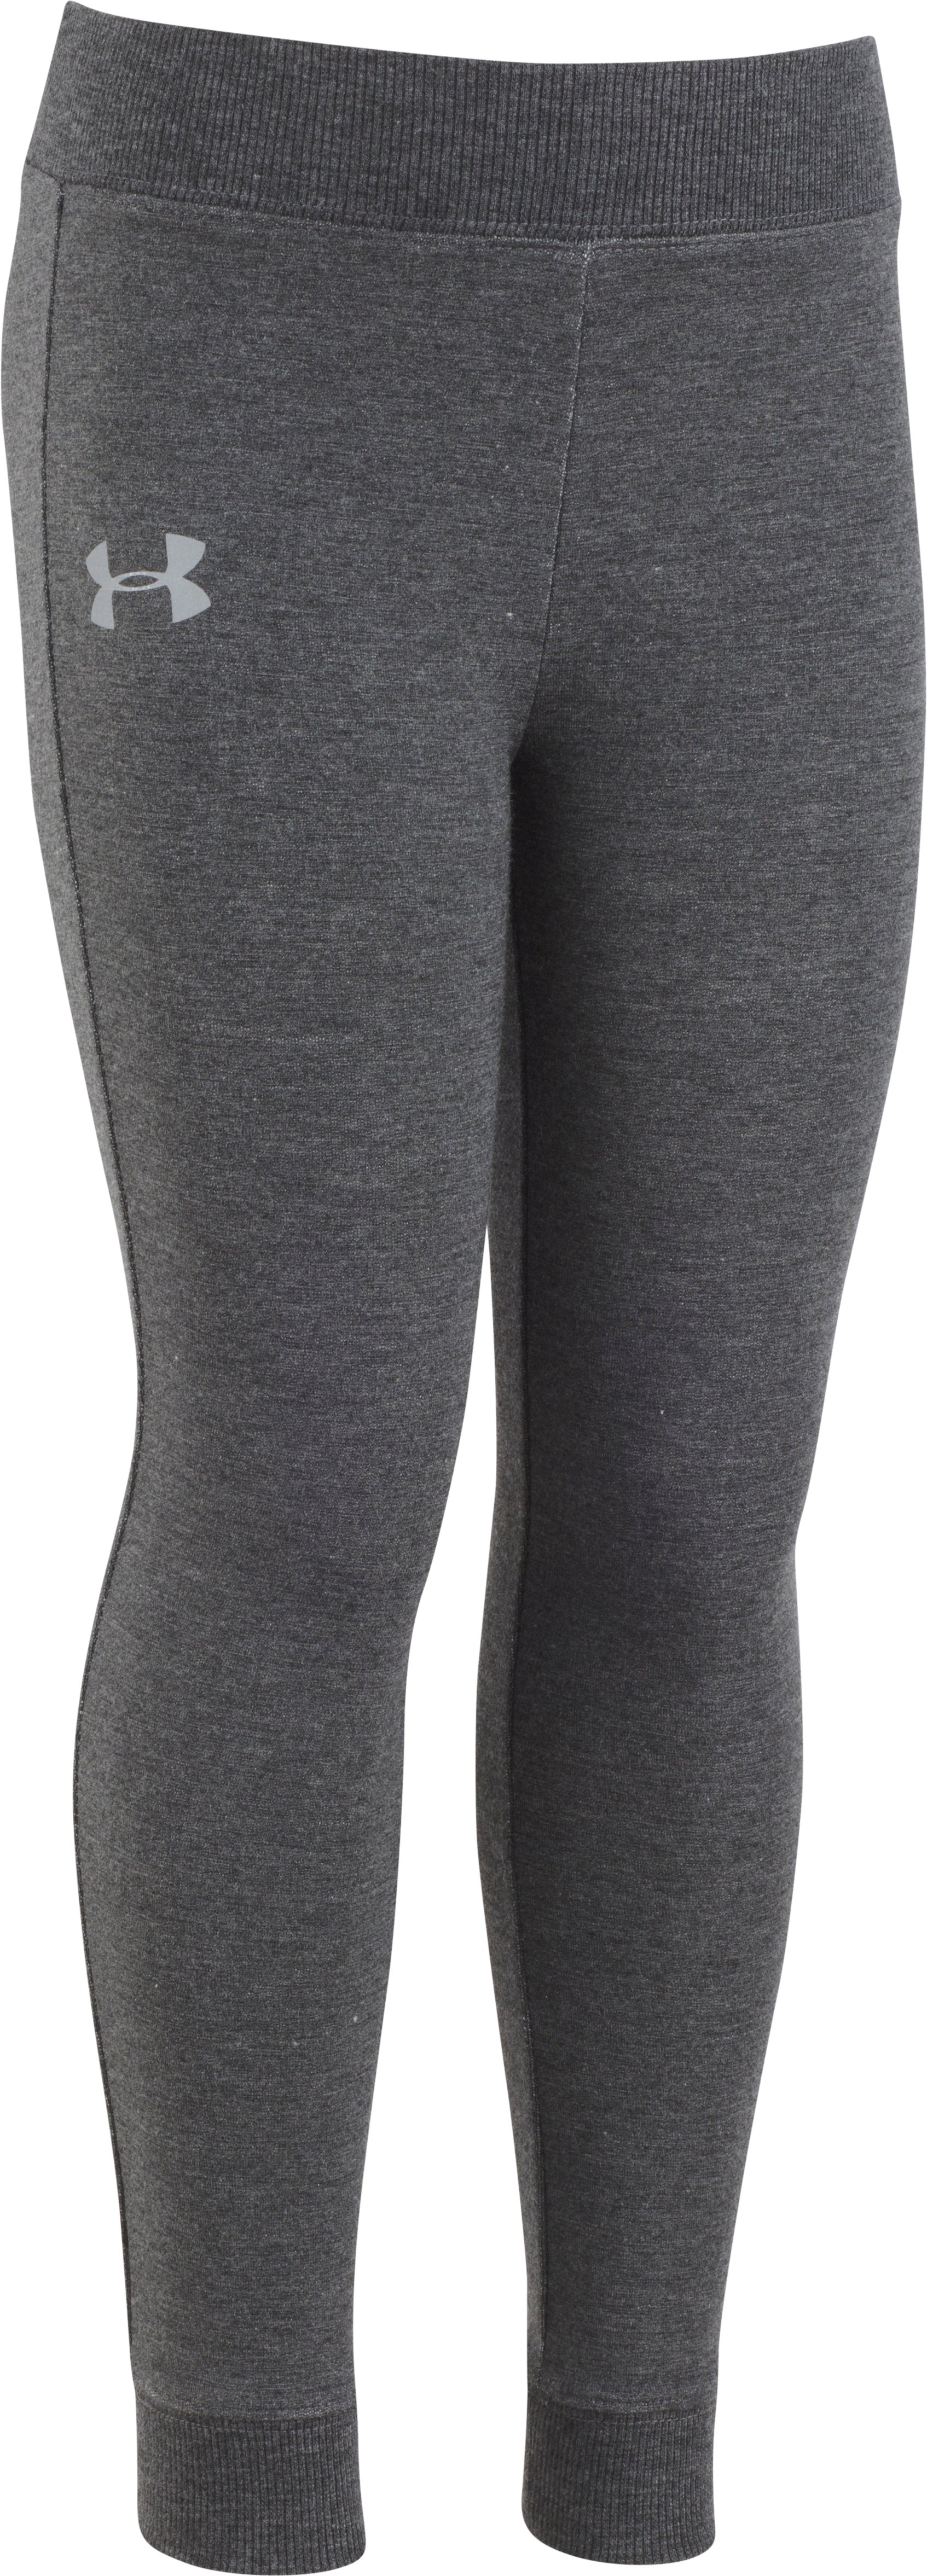 Girls' Toddler UA Stretch French Terry Leggings, Carbon Heather, zoomed